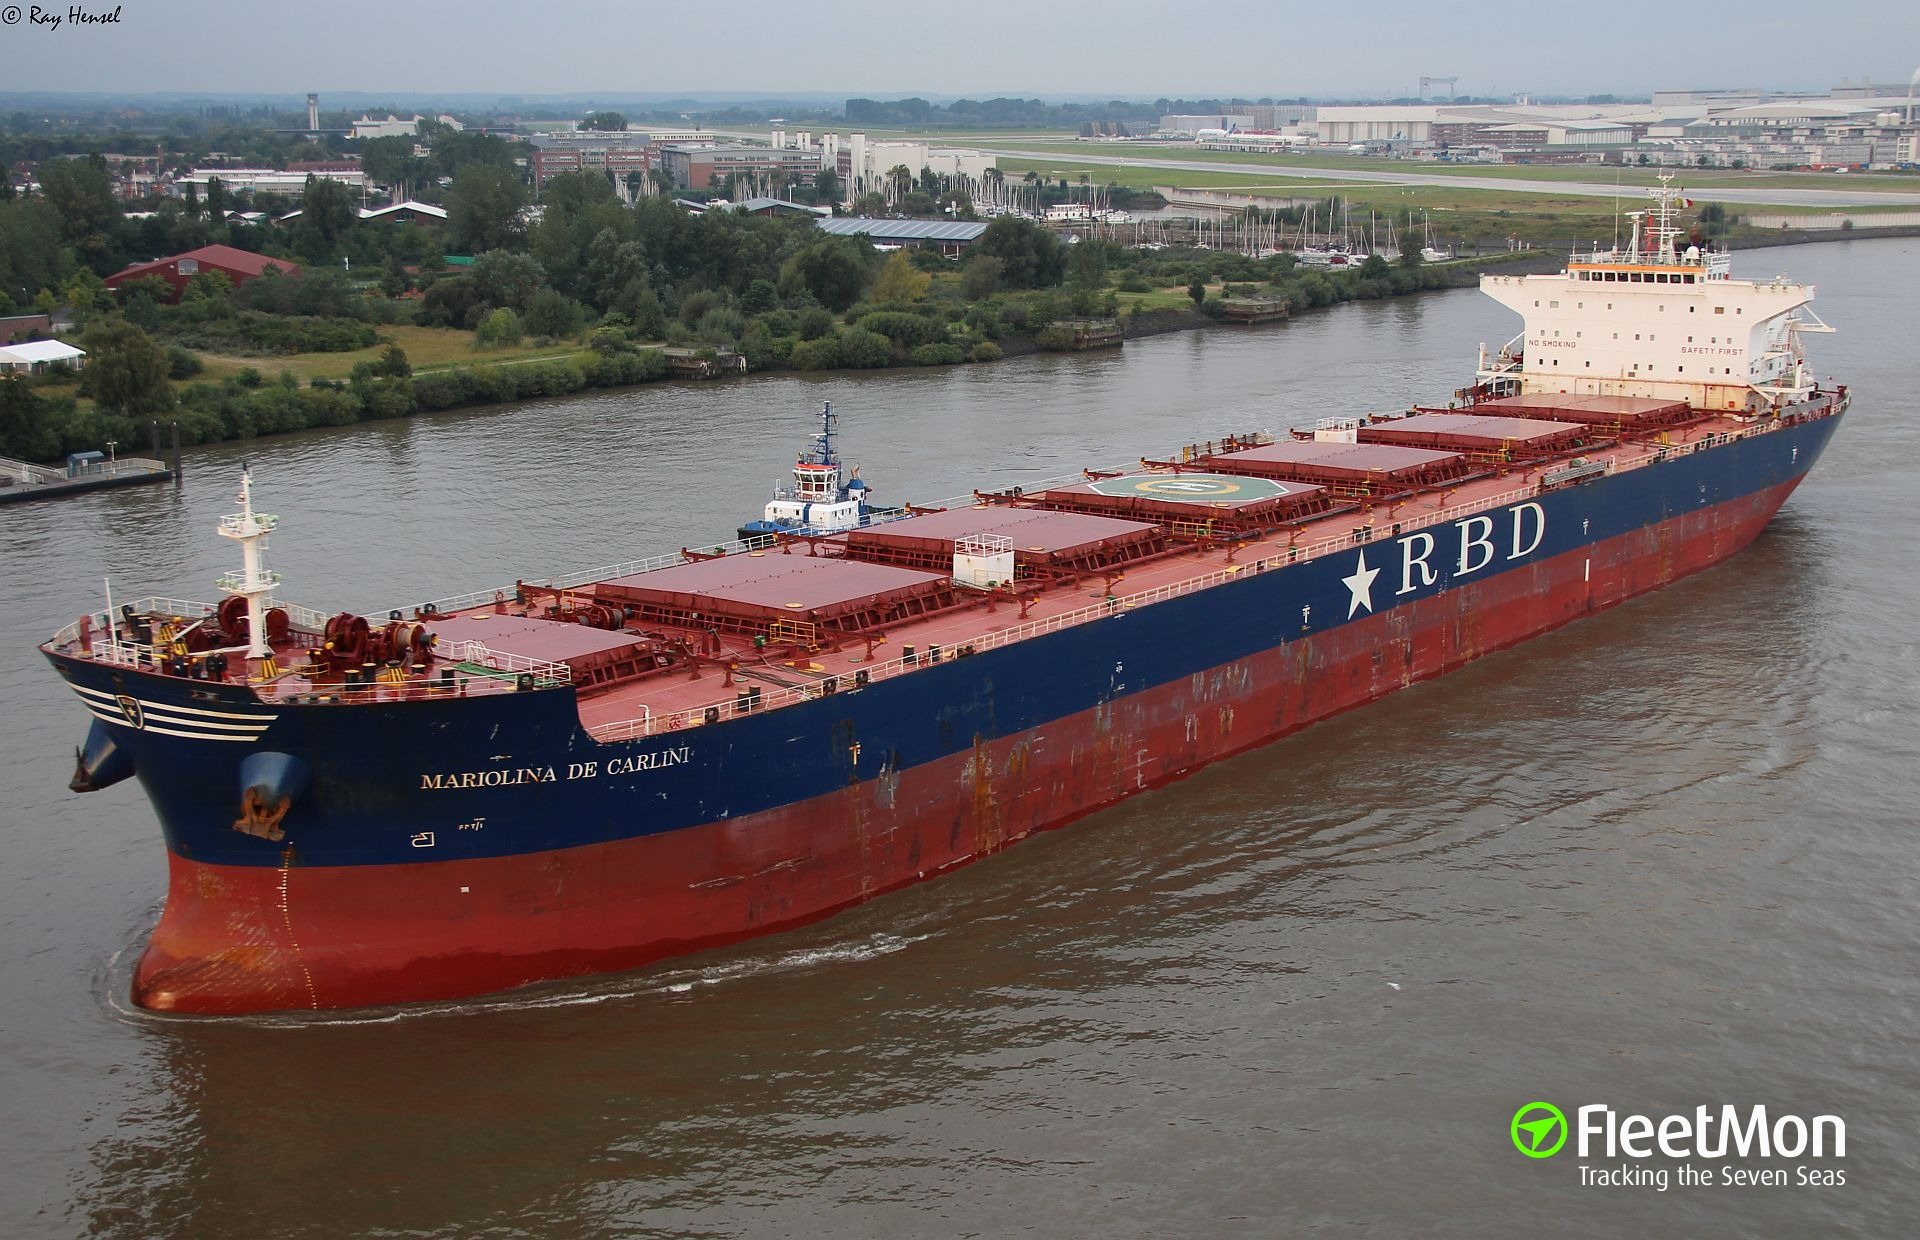 Bulk carrier MARIOLINA DE CARLINI ran aground off Freetown